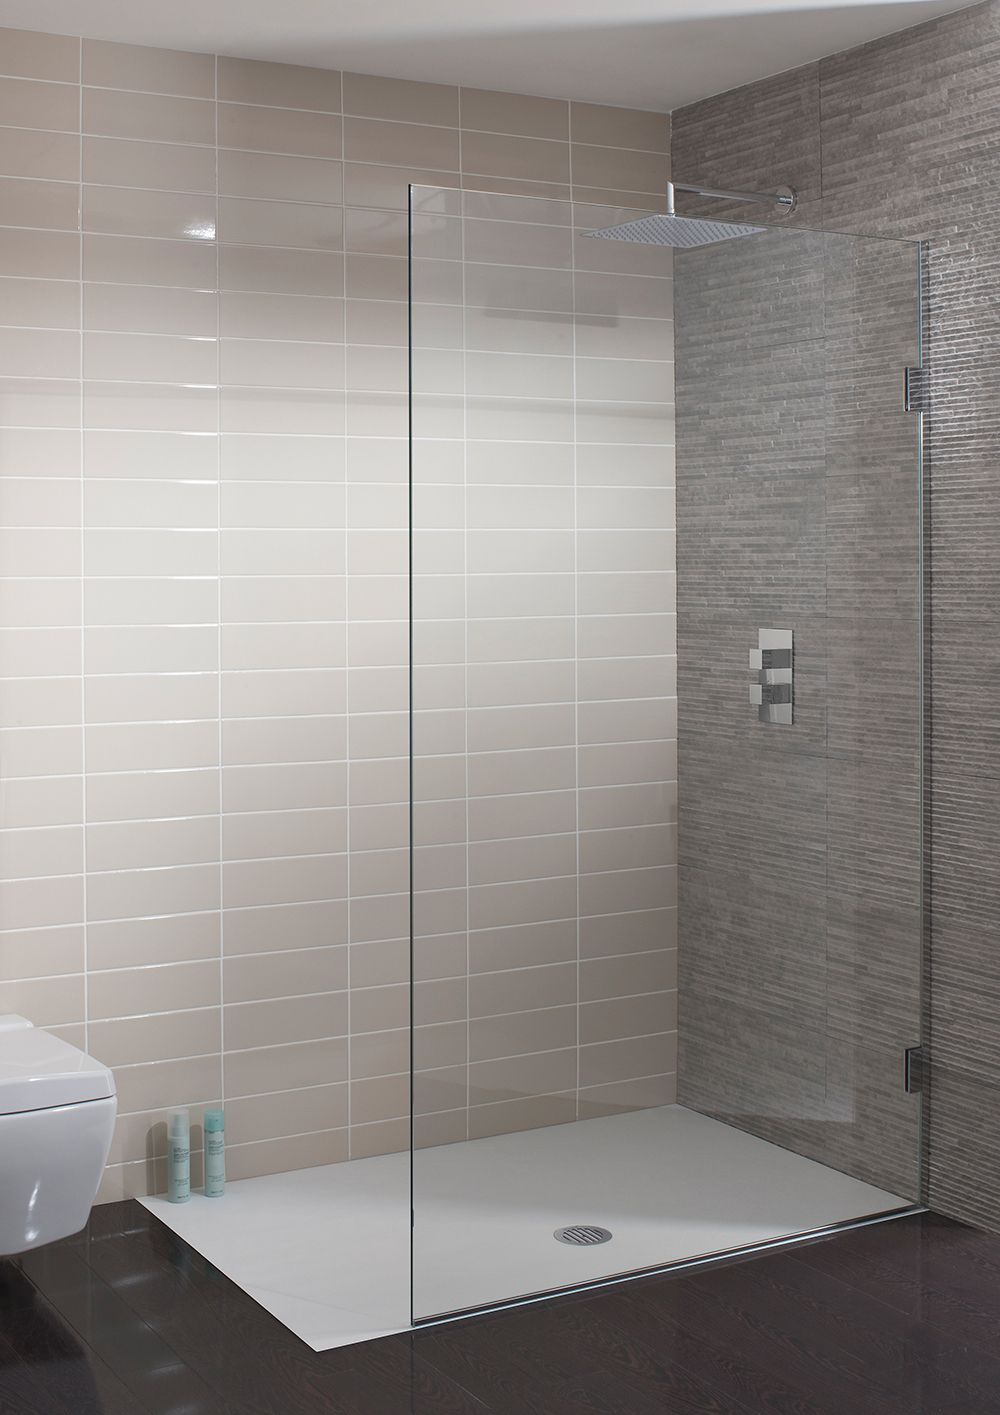 TEN 10mm Single Fixed Panel in Showering | Simpsons - Shower ...